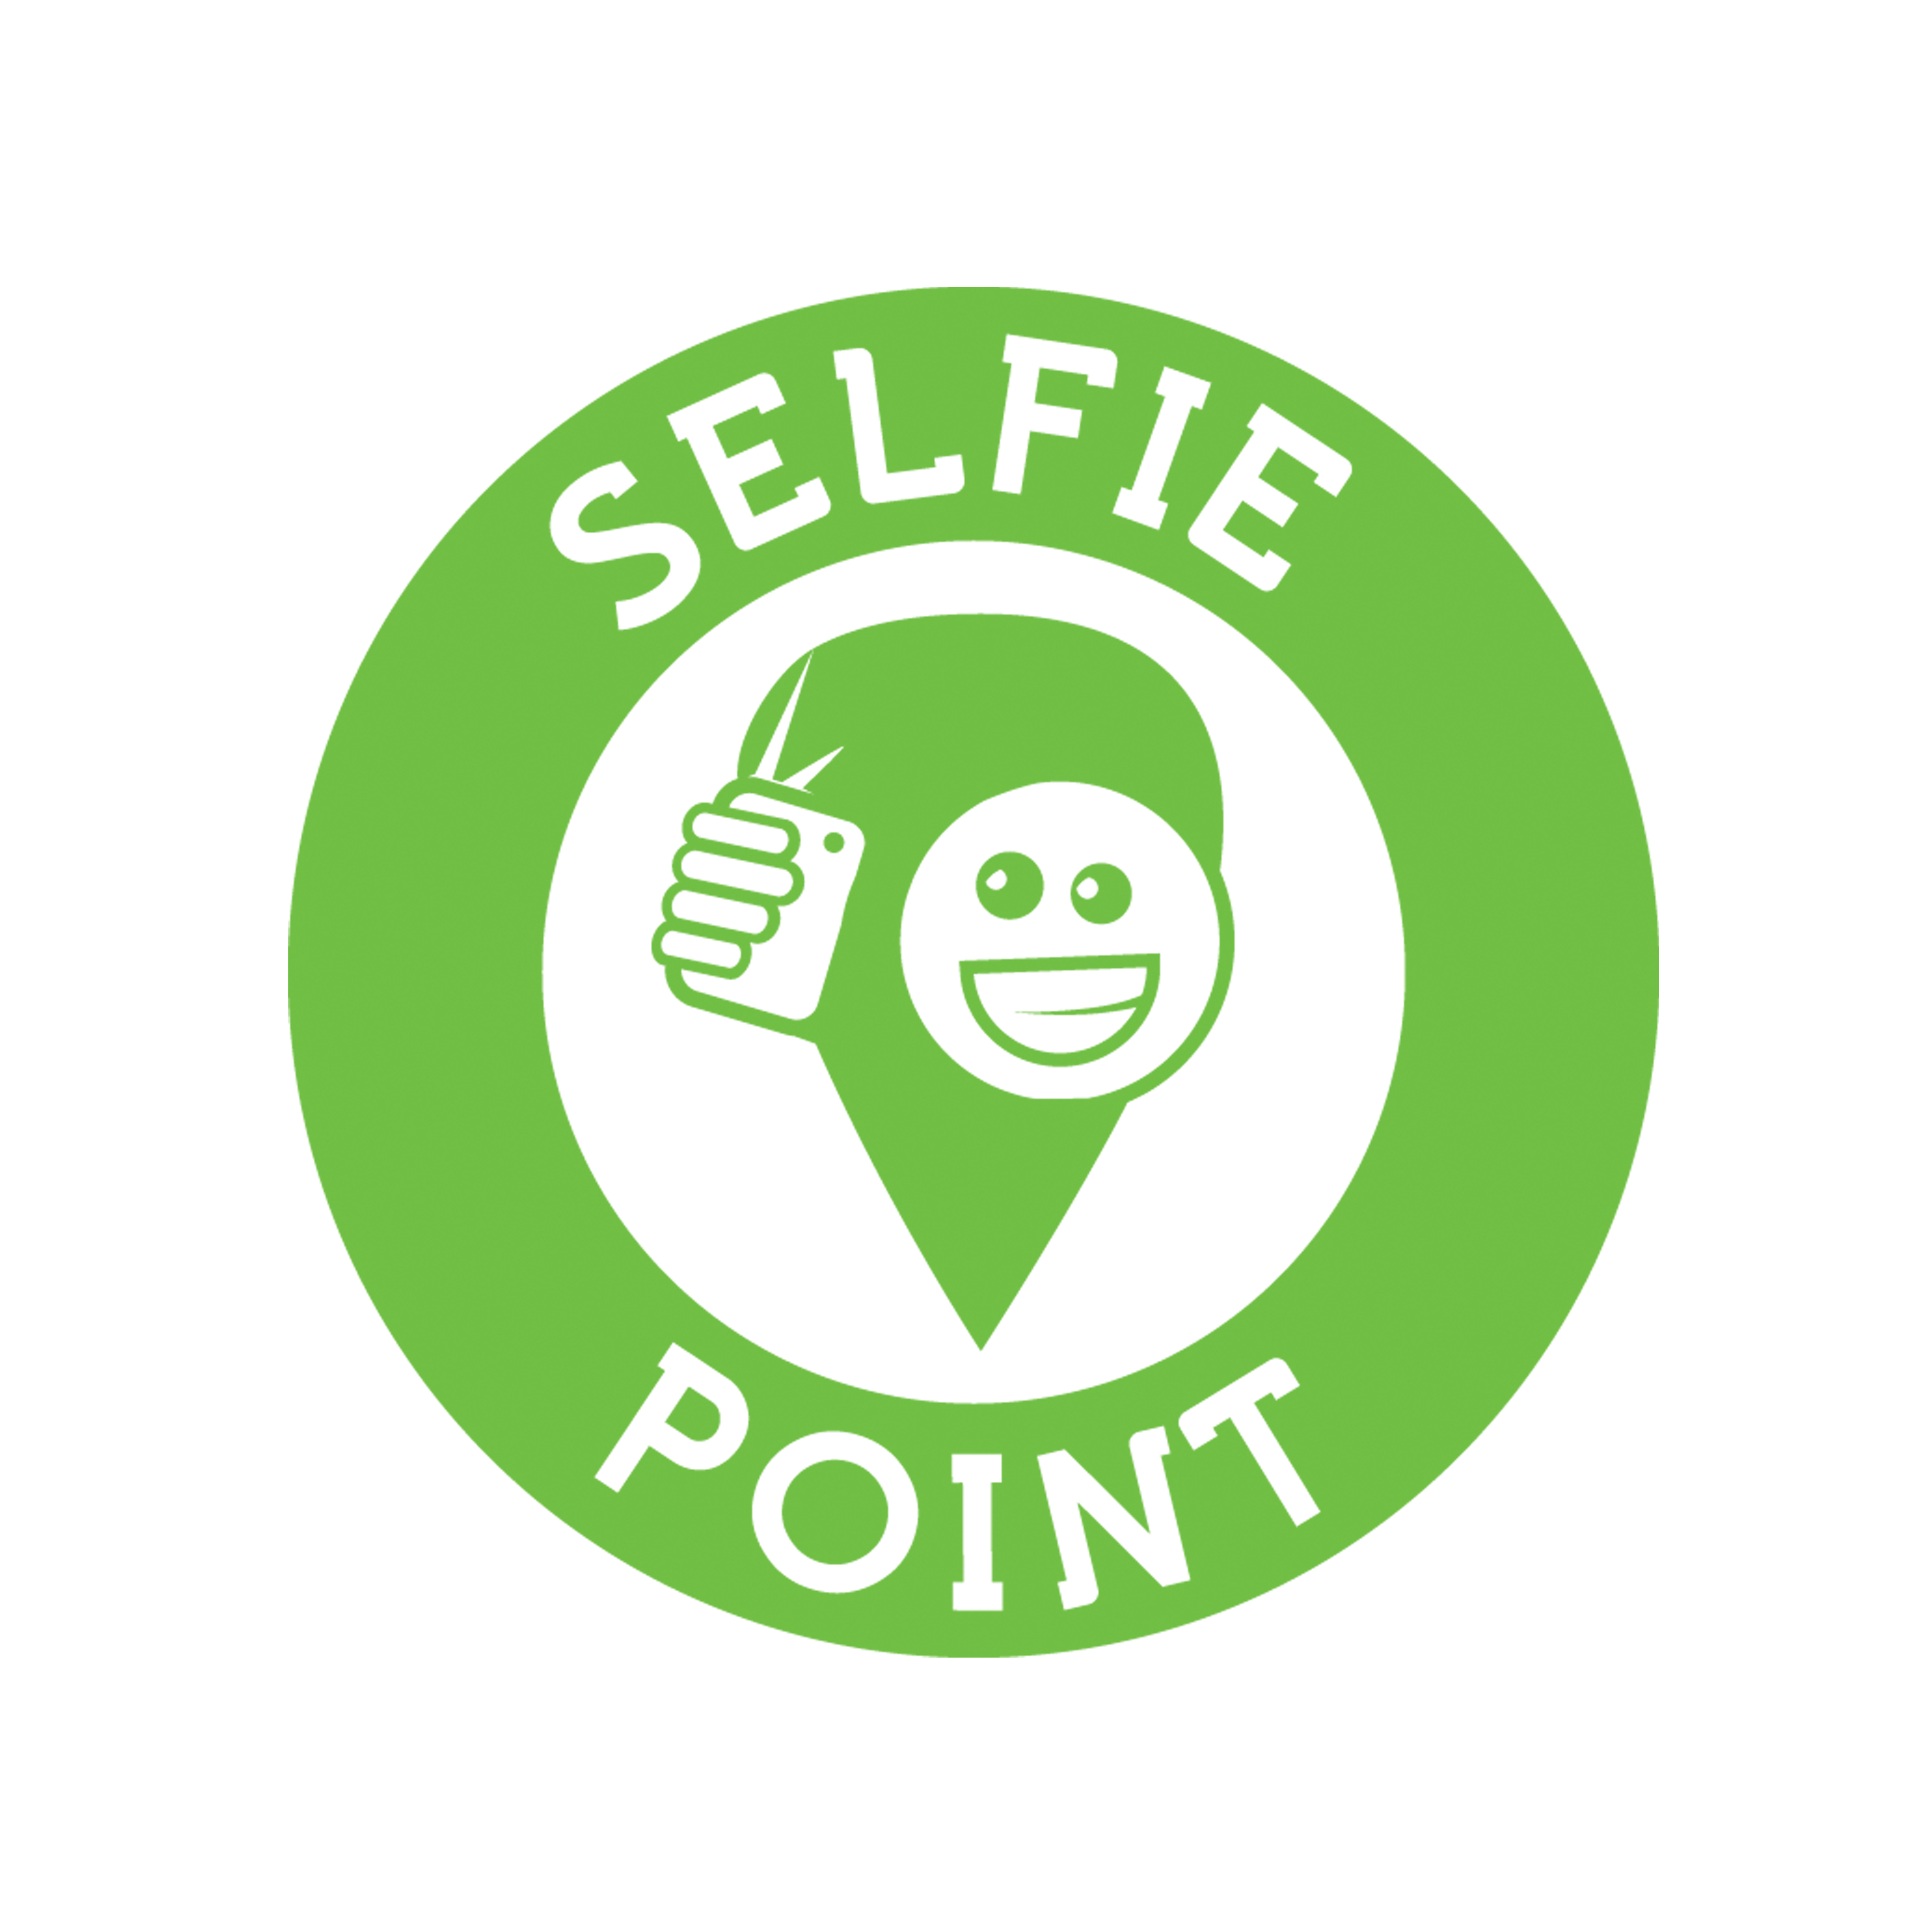 Selfie Point - Logo grün